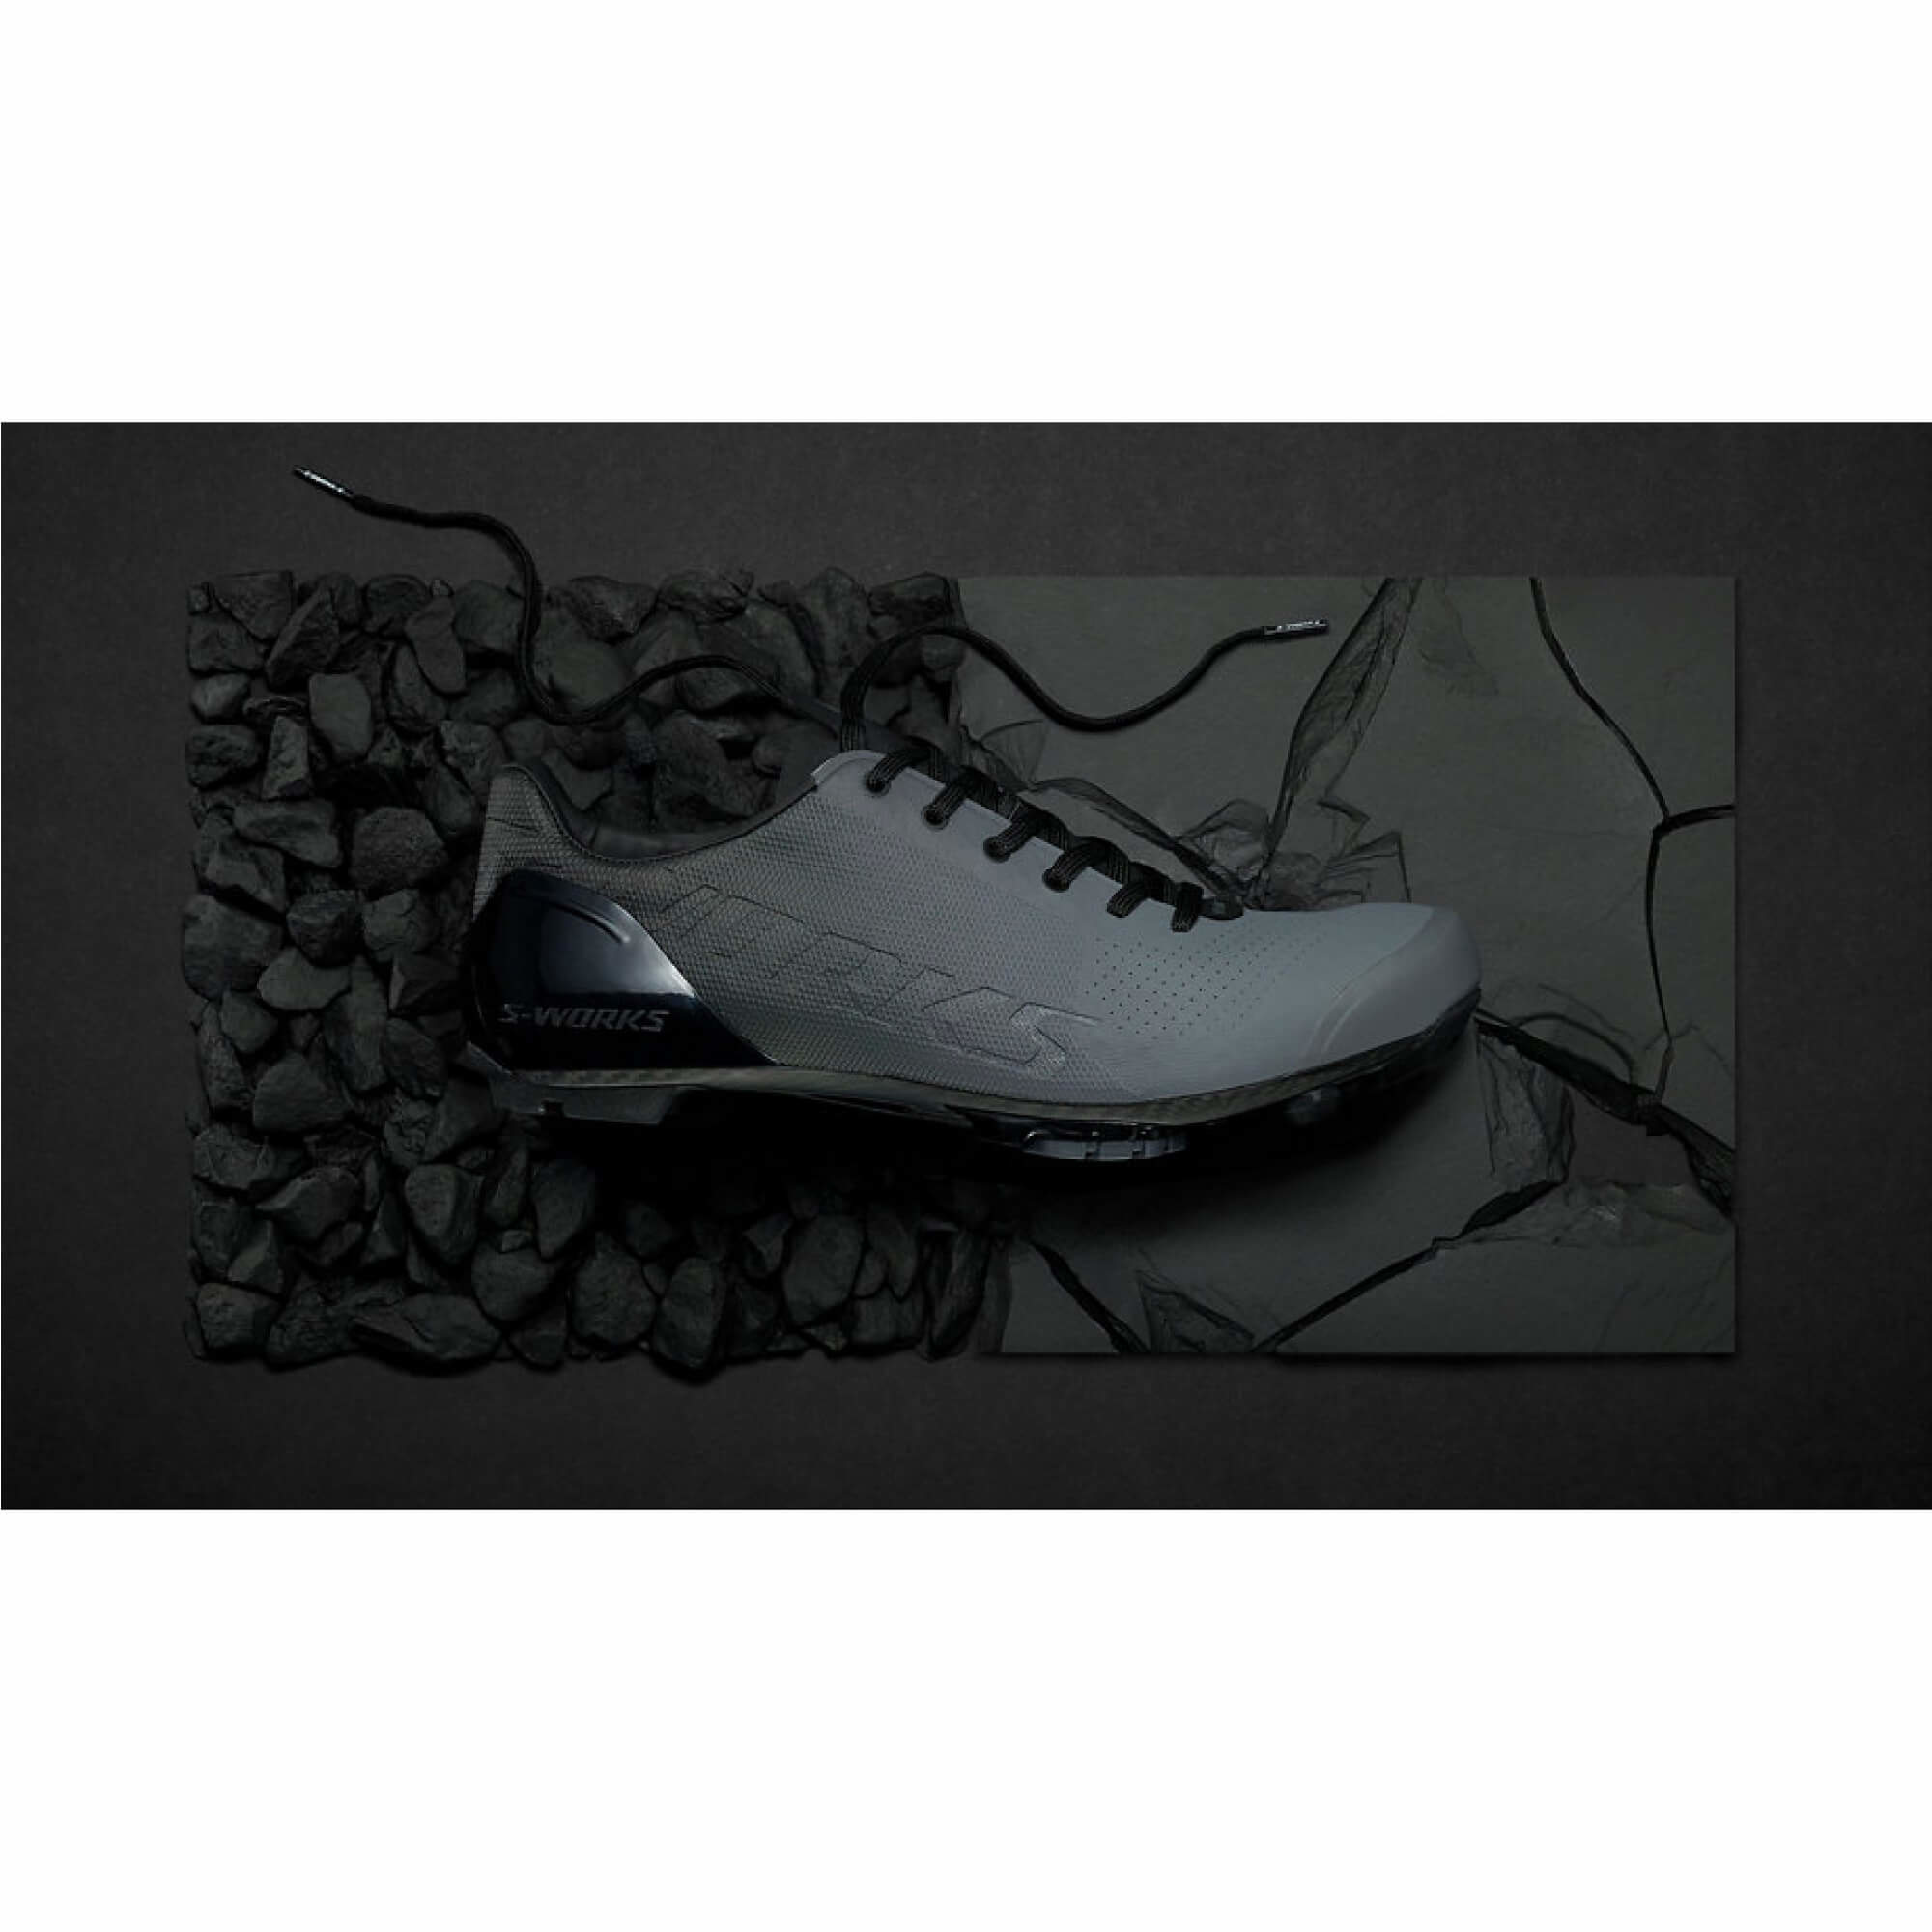 S-Works Recon Lace Gravel Shoes-6